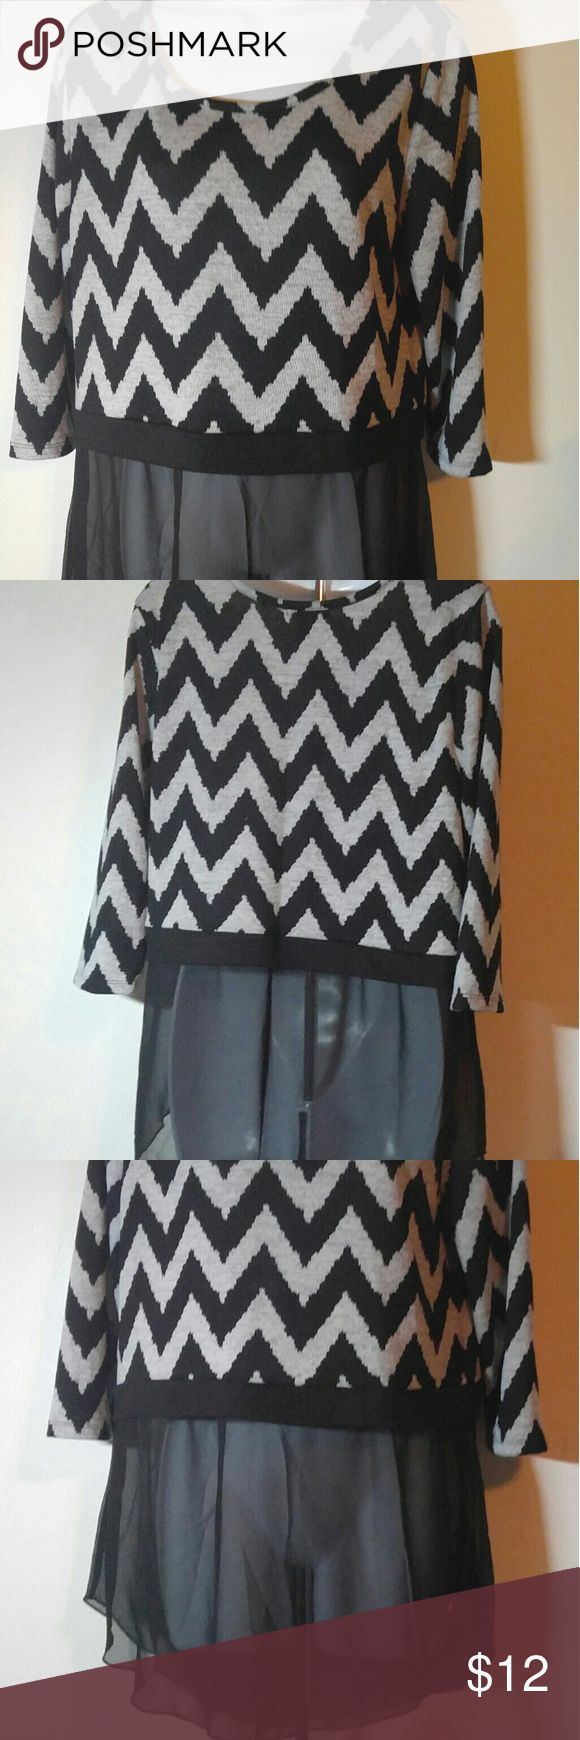 Mix&Co. Black Chevron Top with Sheer Bottom Sz L Black Chevron Top with Sheer Bottom Sz Large- Like New Mix&Co. Tops Tunics